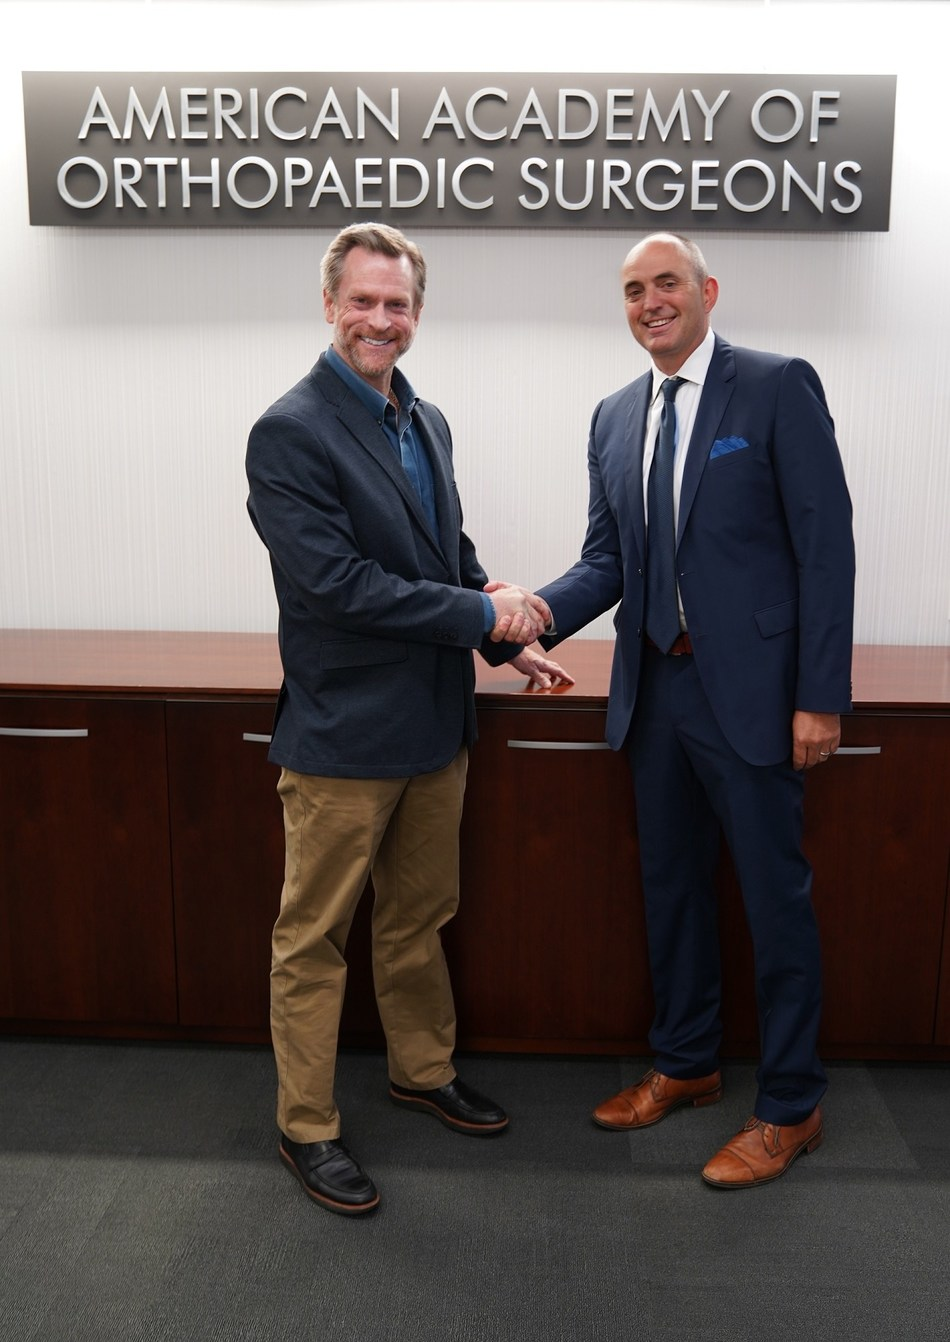 Pictured here: Tom Arend (AAOS) and Gregory Pierce (CareCredit)